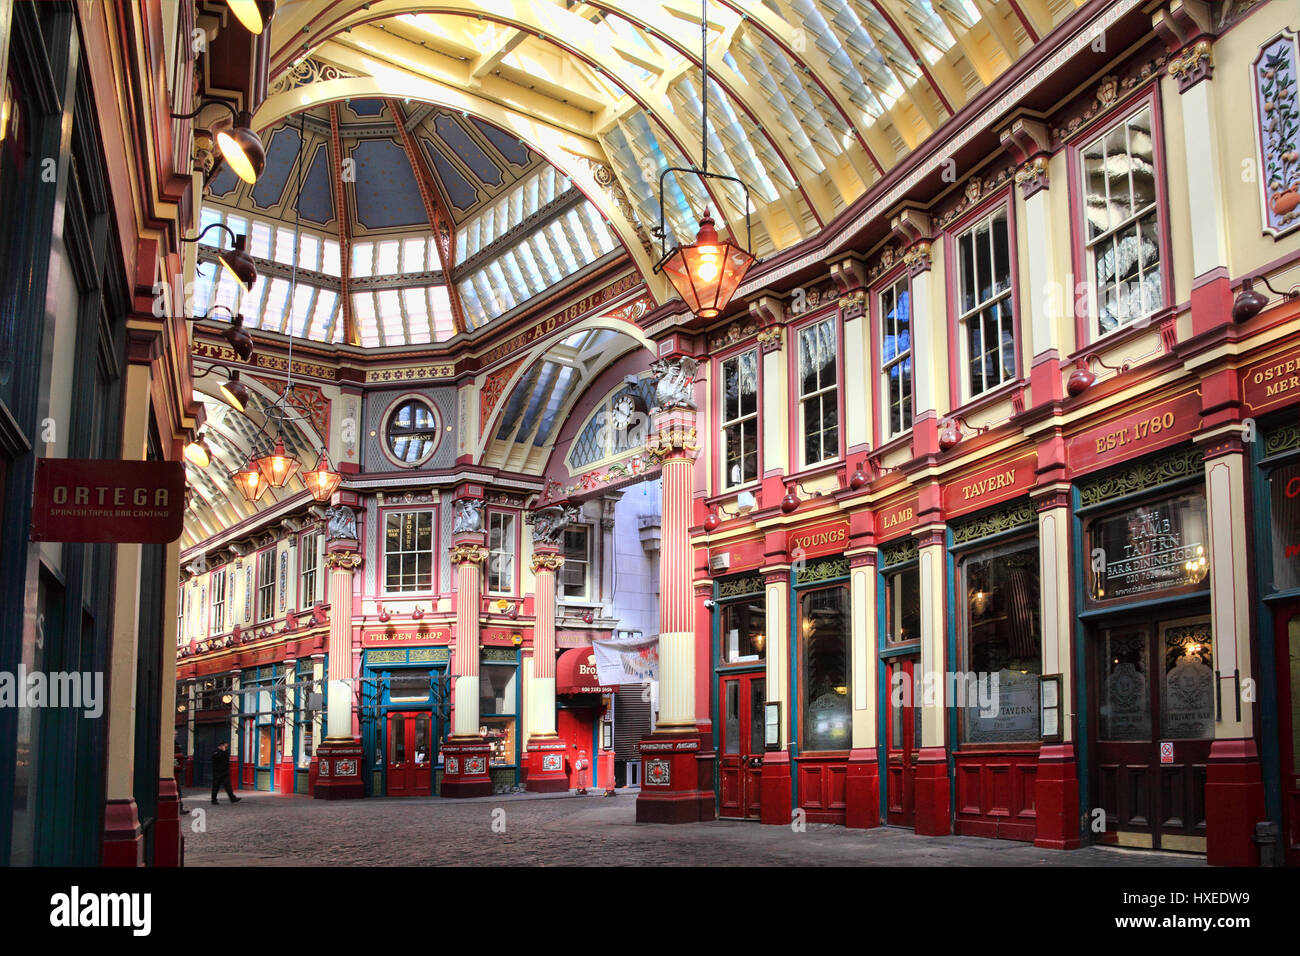 London, UK, March 19, 2011 :  Leadenhall Market in Gracechurch Street which has a covered roof and sells mainly - Stock Image